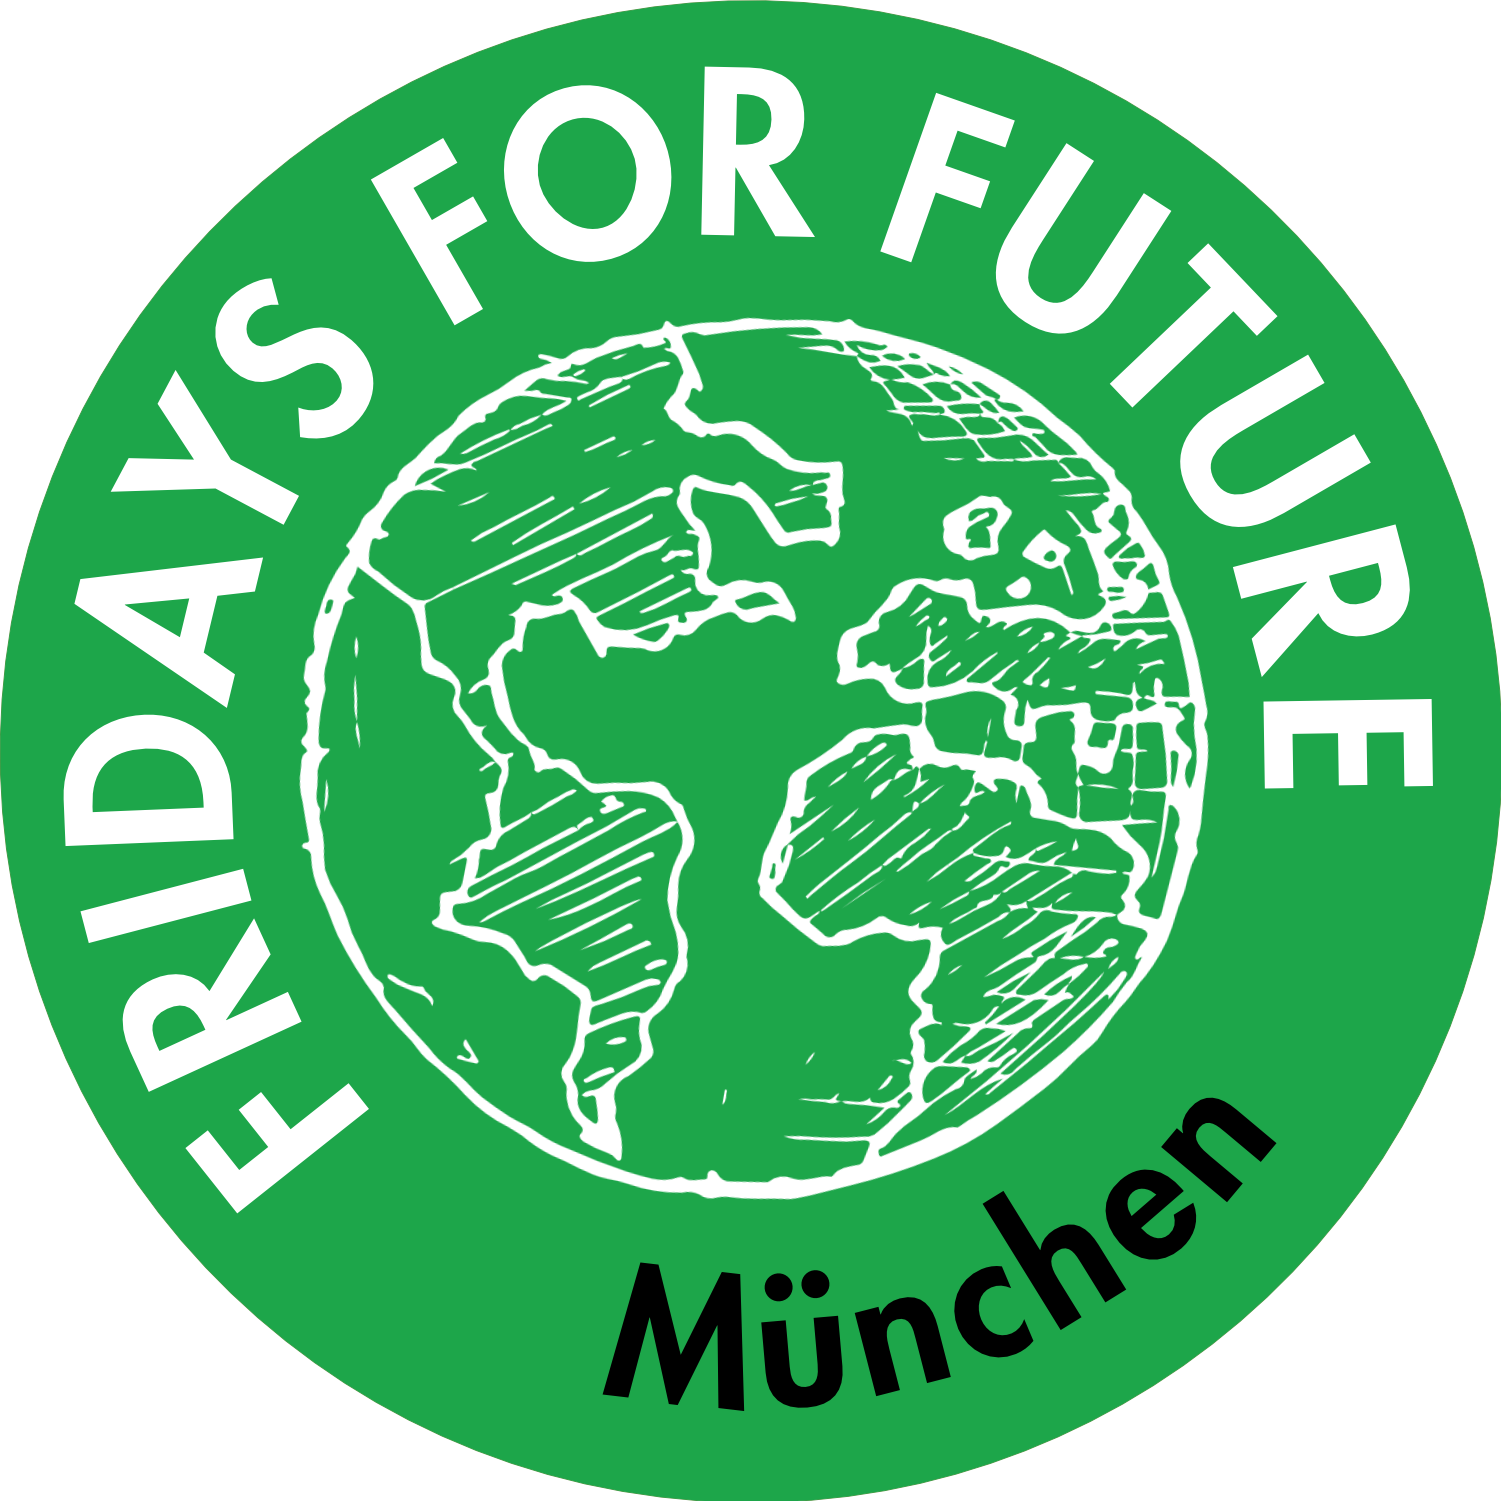 Fridays for Future München